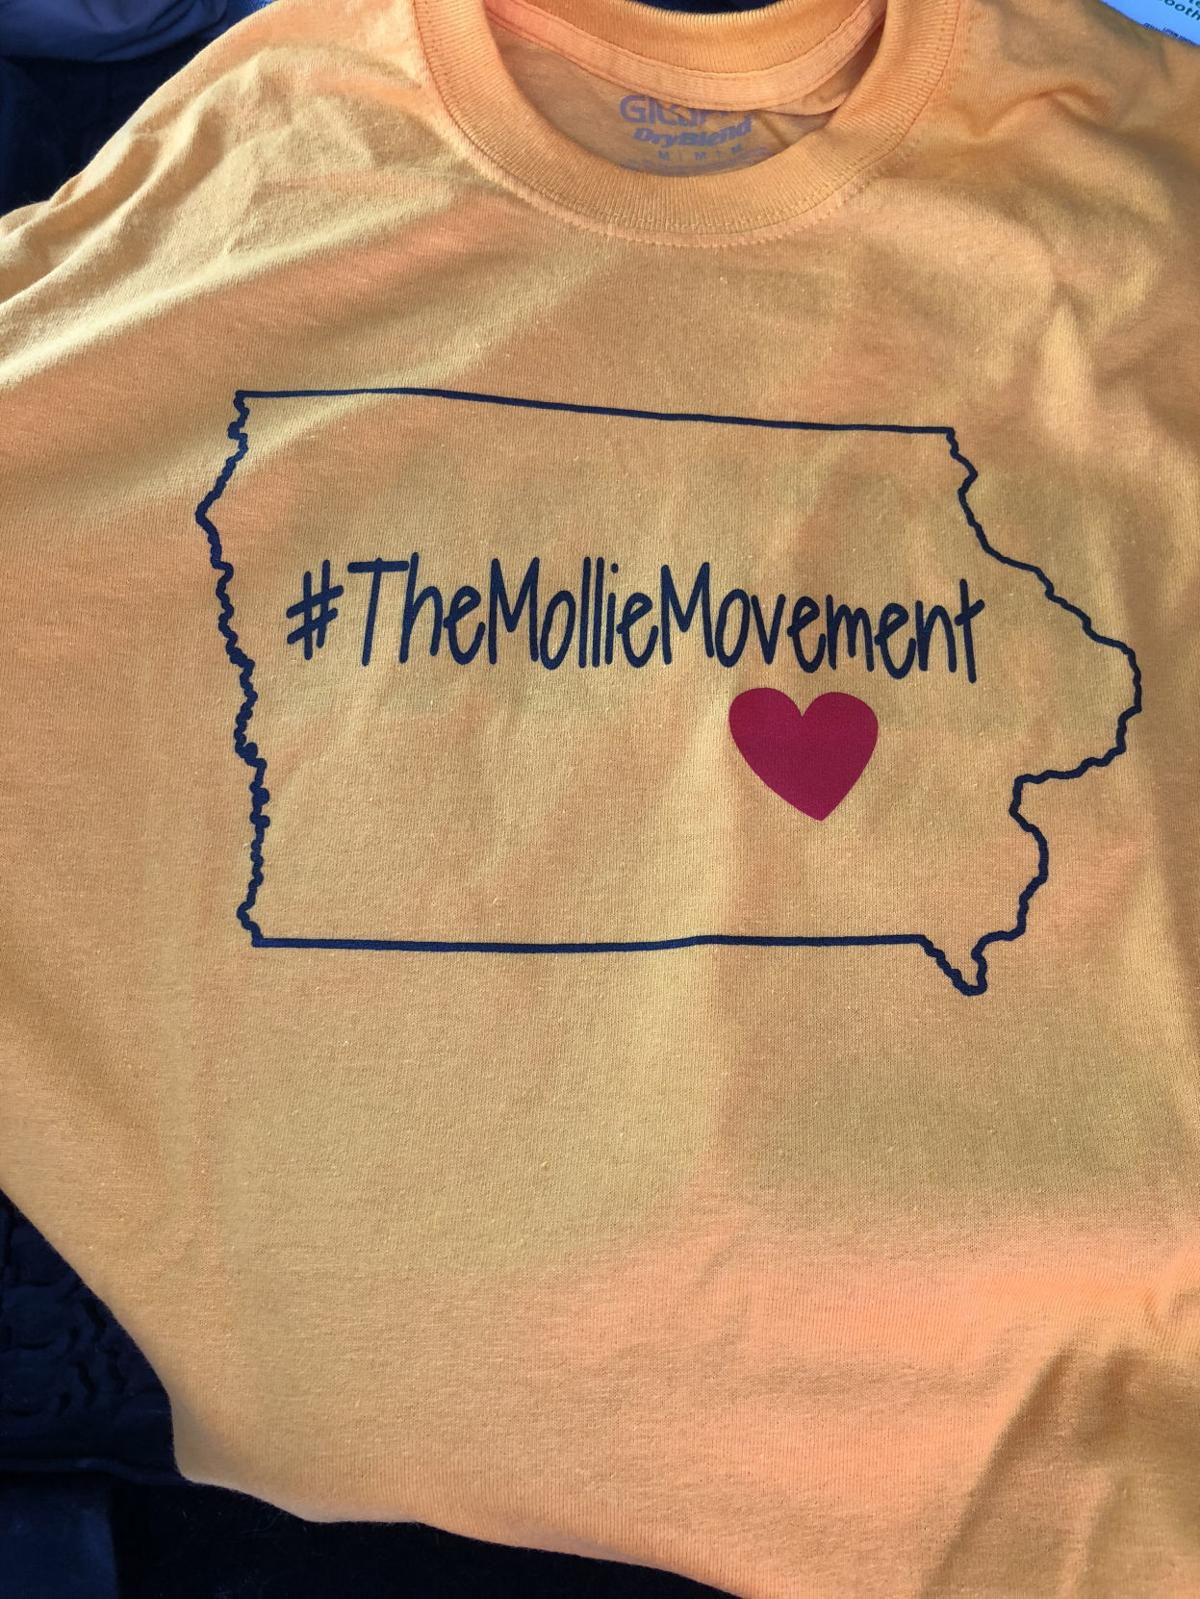 Mollie movement shirt